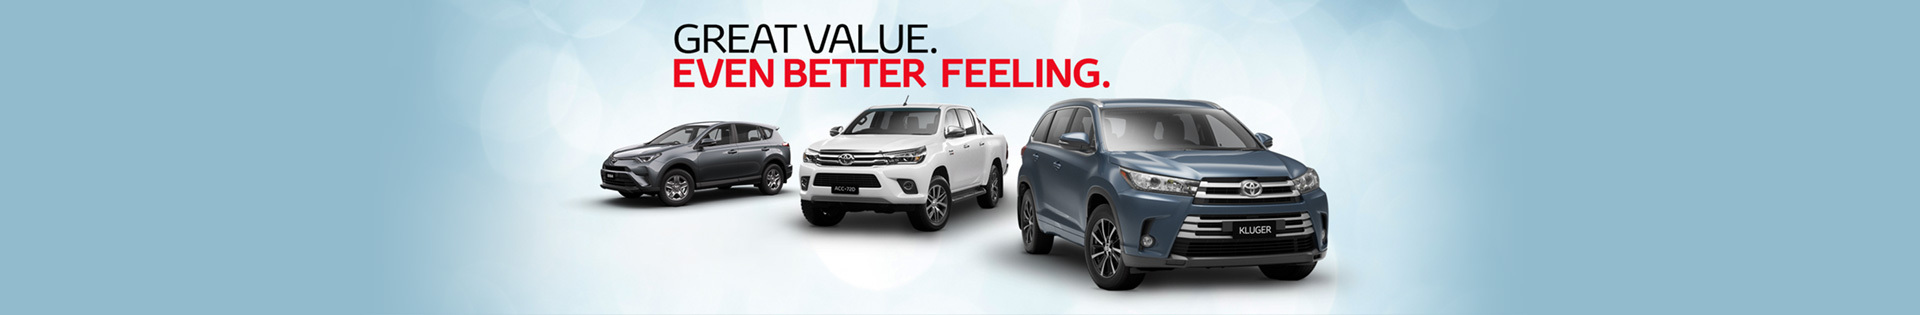 Toyota - Nation Offer - Great Value, Even Better Feeling